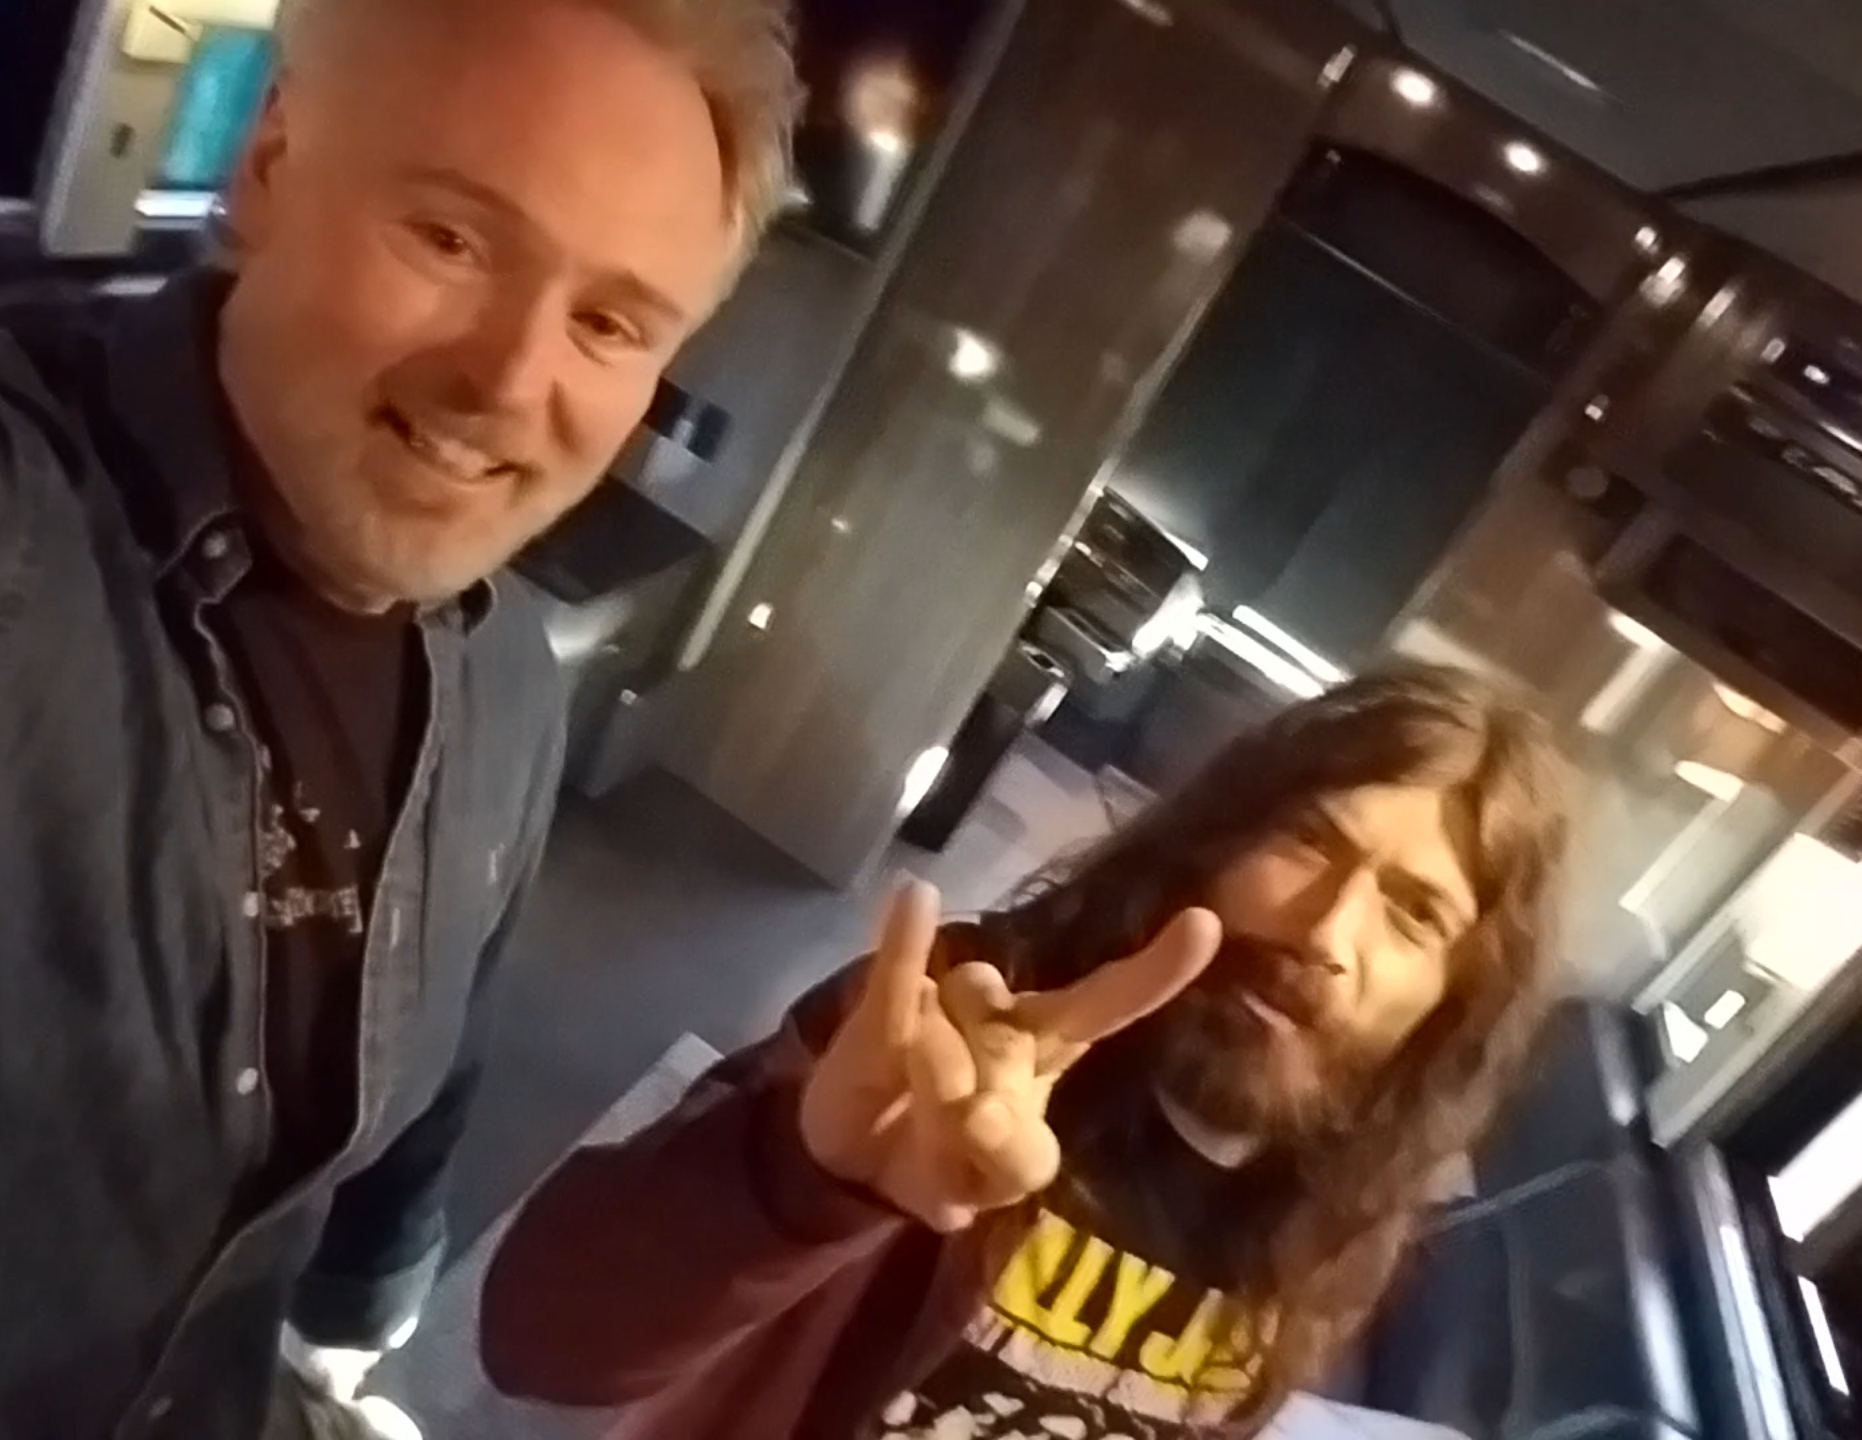 Brian Collins The Rabid Monk and Michael Devin Whitesnake Bassist/ Frontman - From The Earth